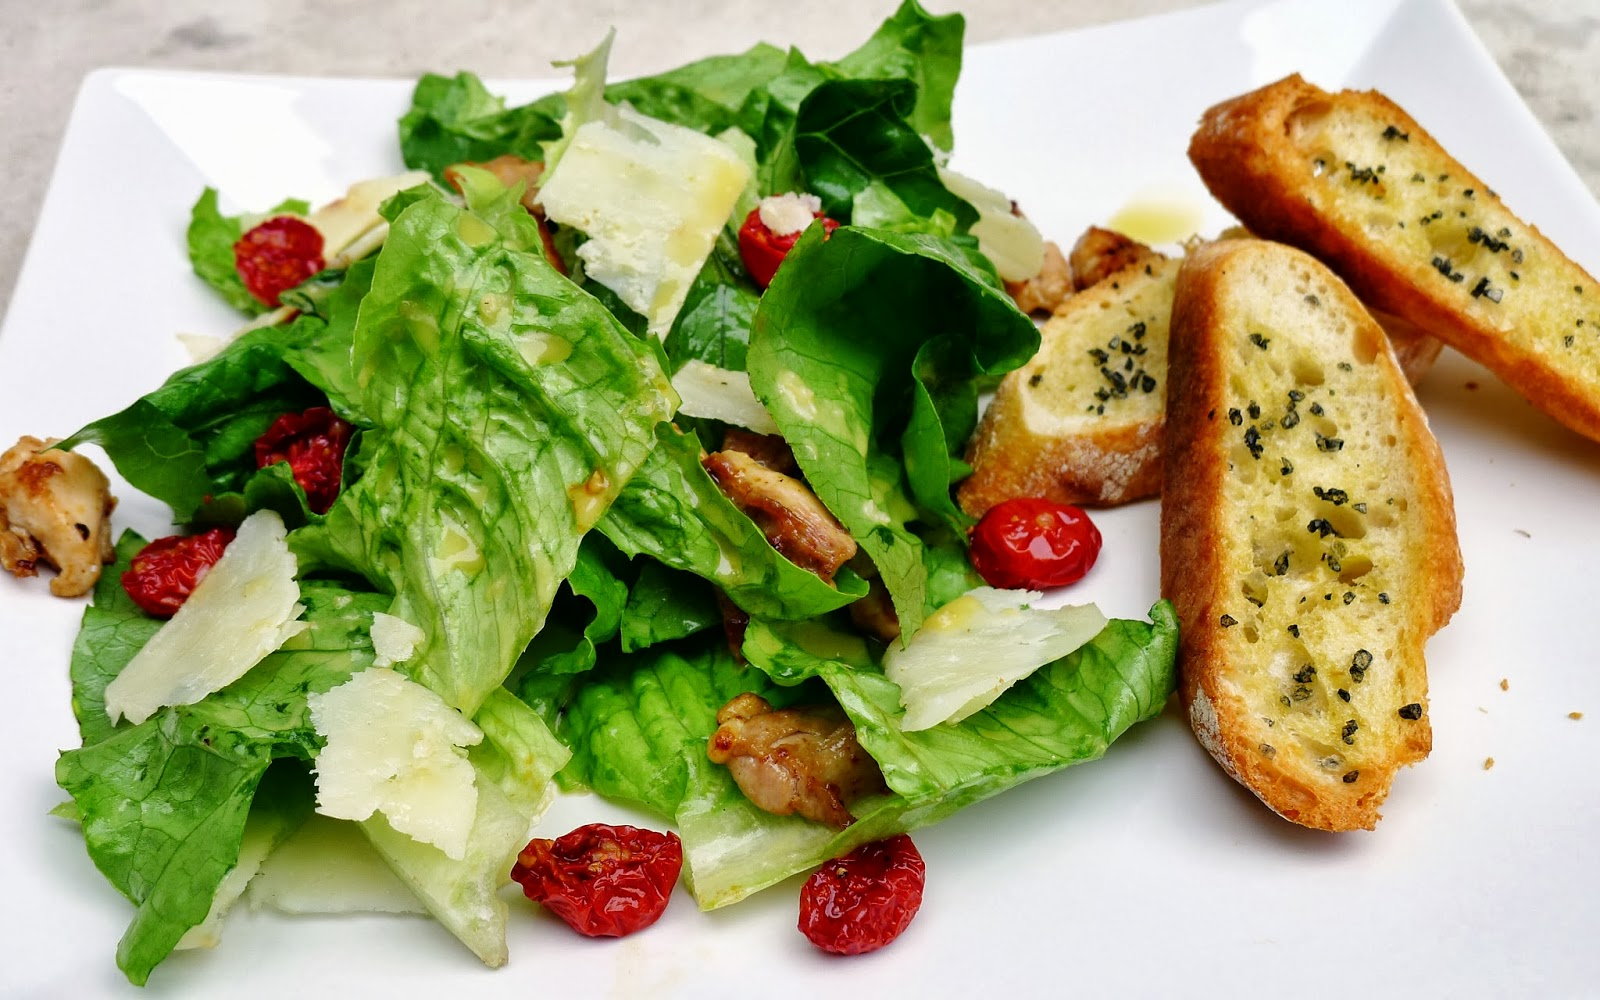 Ilse's Kitchen: Caesar Salad with Chicken and Slow Roasted Tomatoes